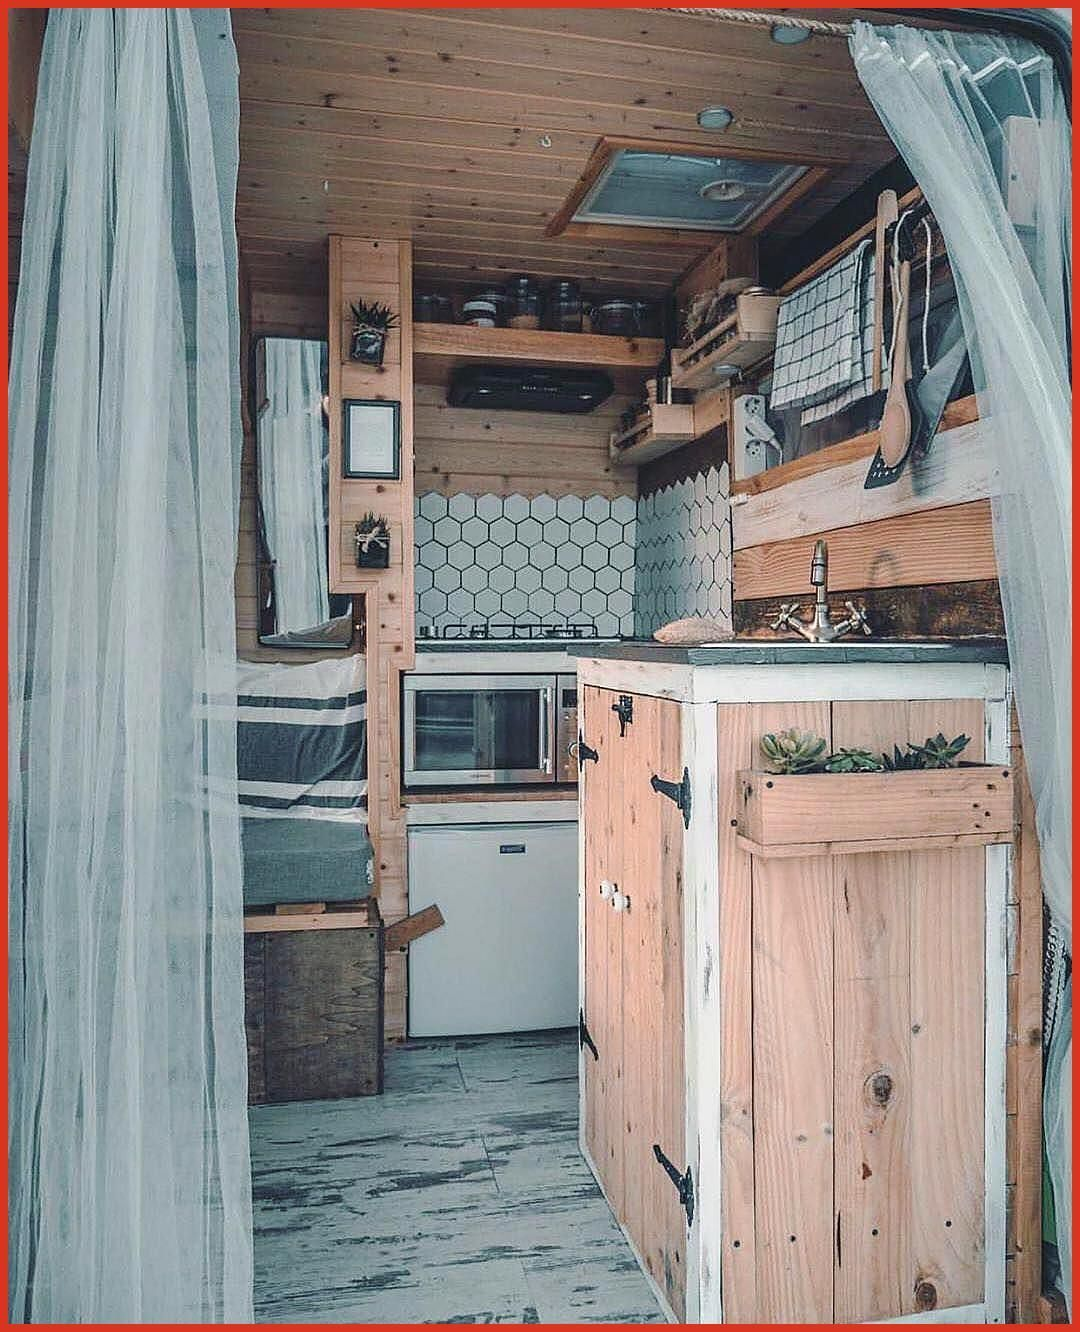 Tiny Society On Instagram Here S The Van Kitchen You Dreamt About